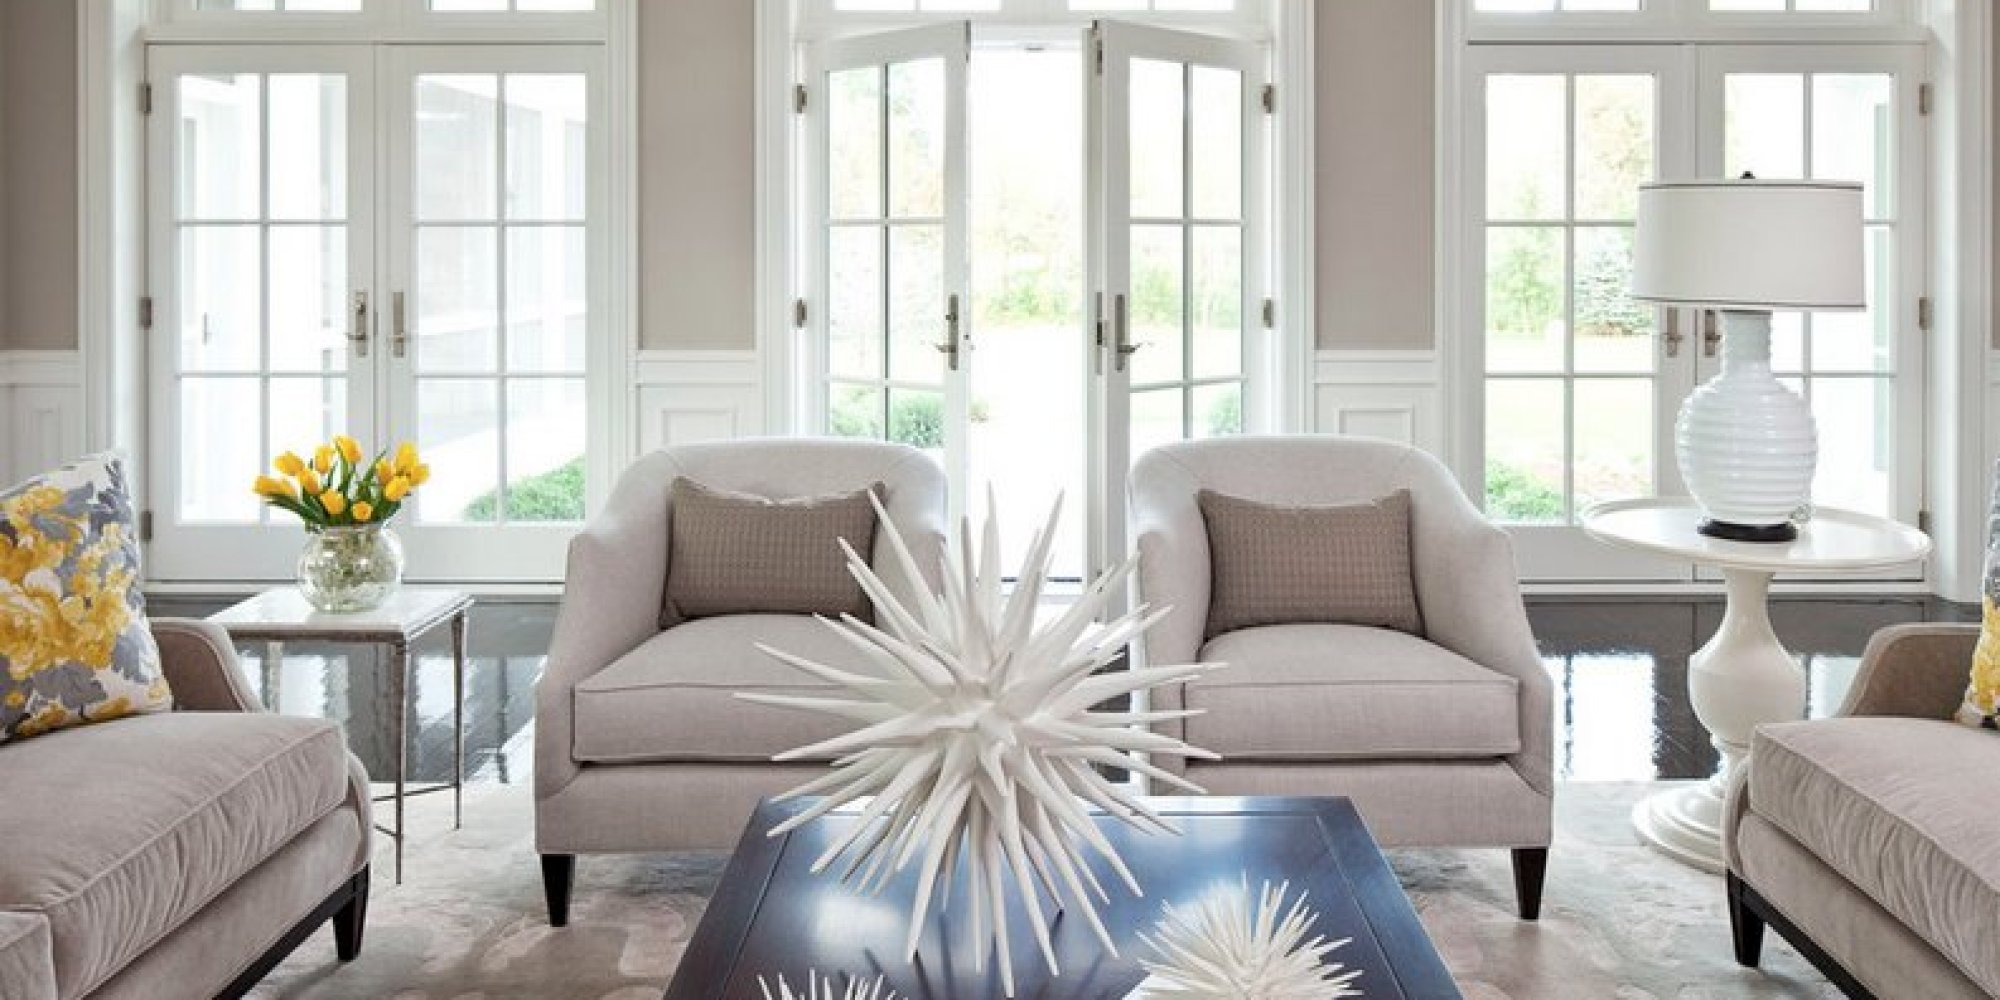 Neutral Color For Living Room The 8 Best Neutral Paint Colors Thatll Work In Any Home No